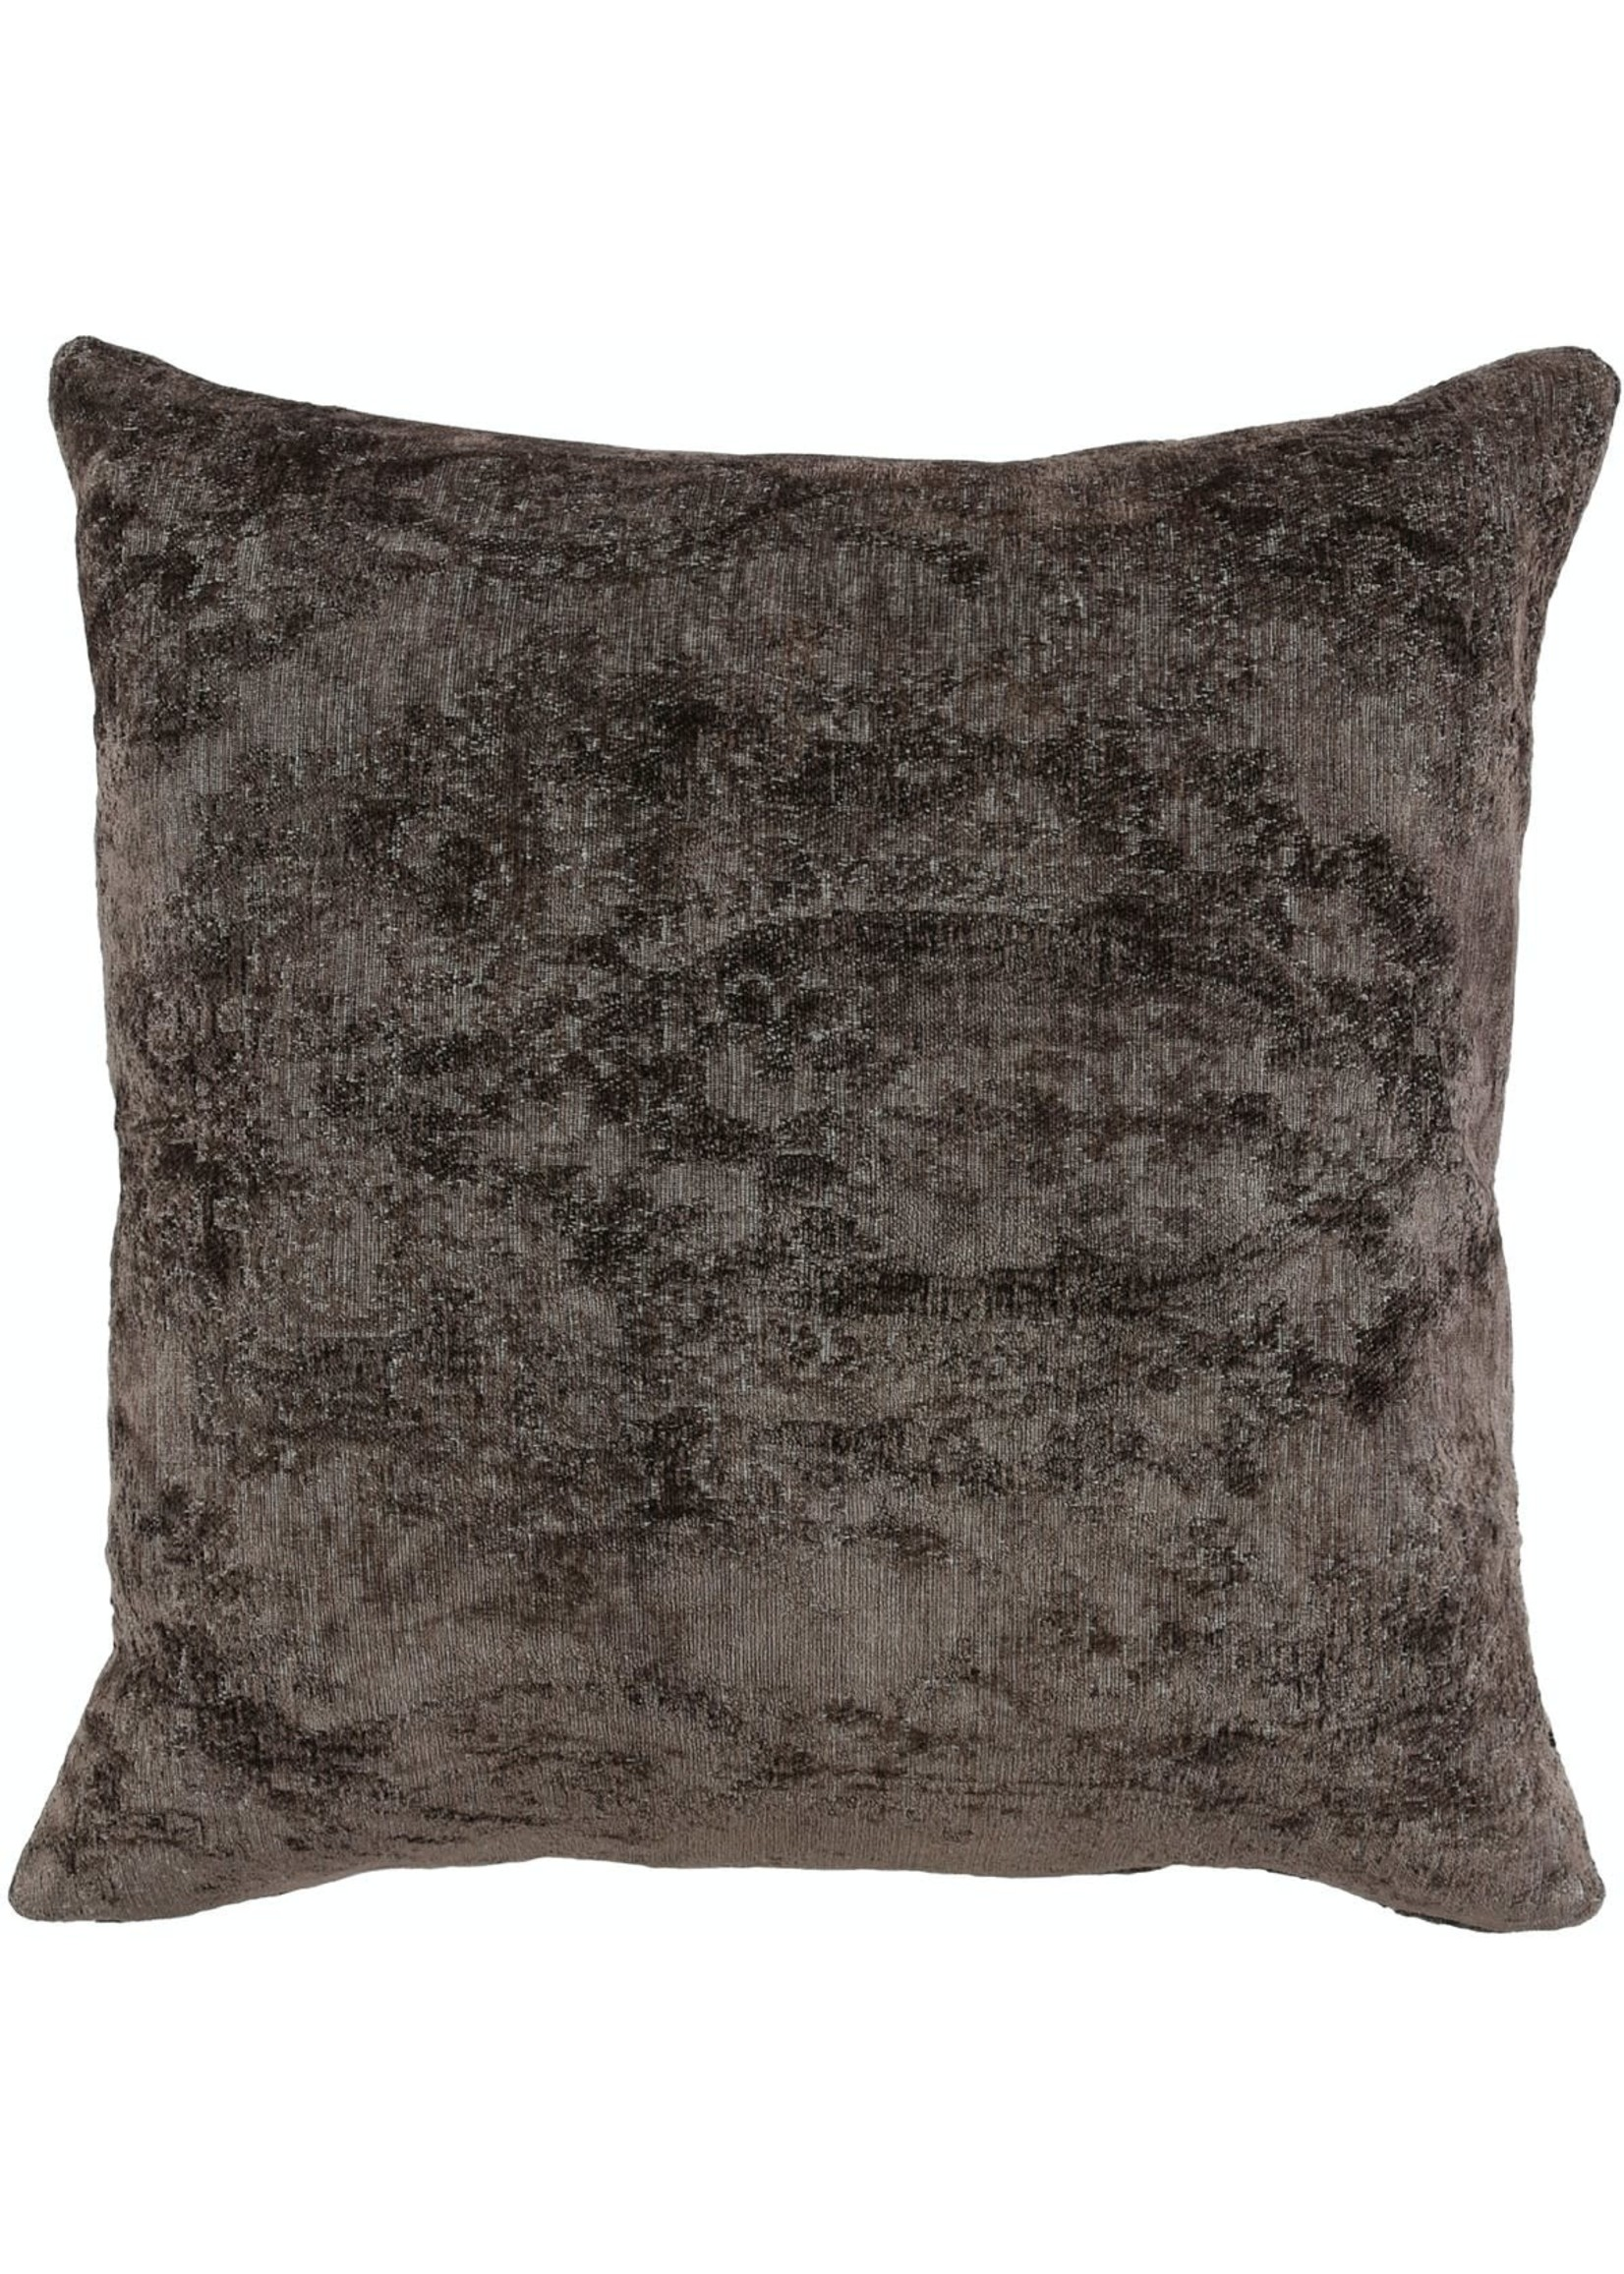 SLD OLIVER FOSSIL 22X22 PILLOW